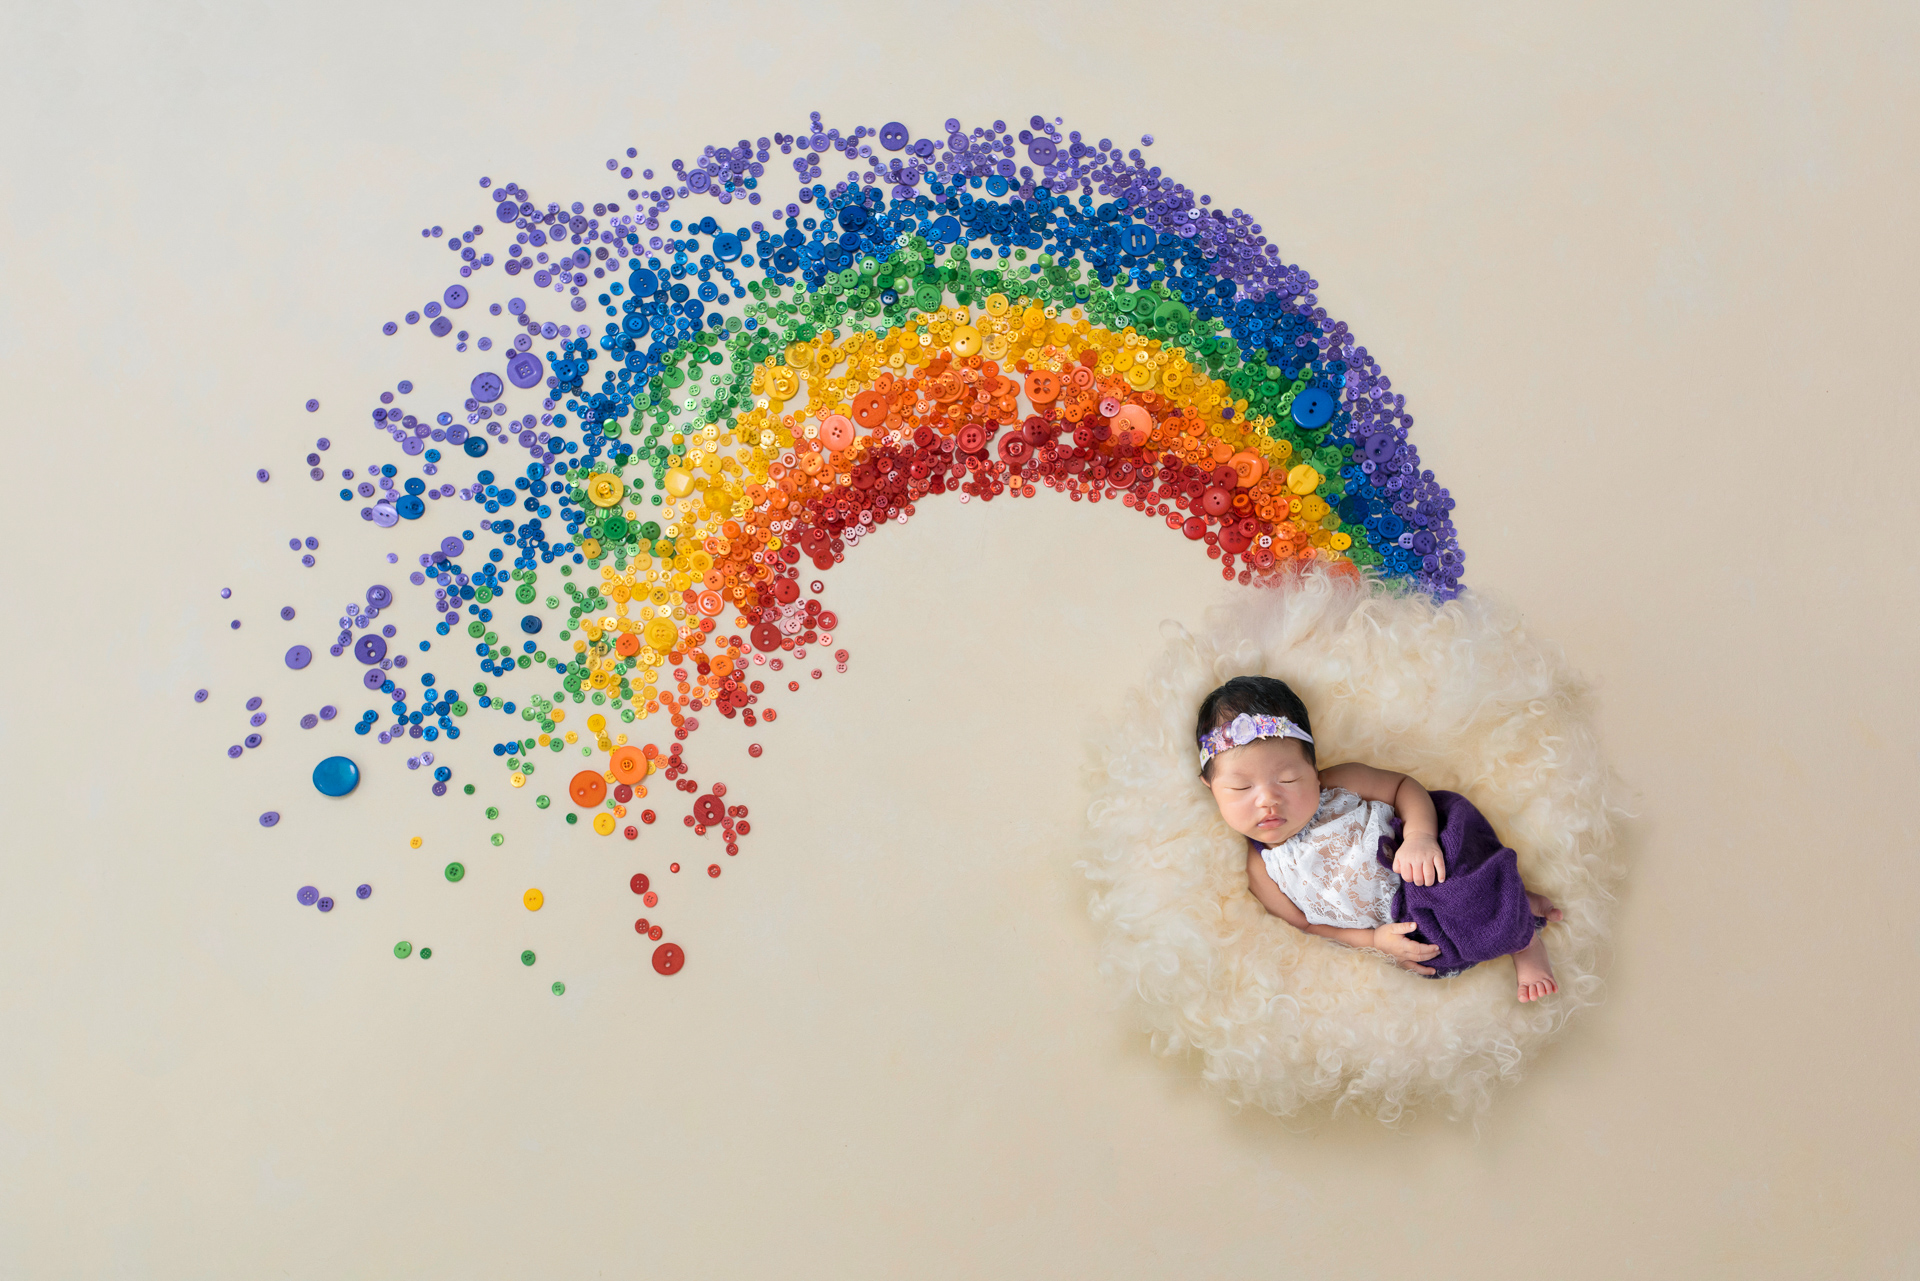 Baby wearing purple headband an white and purple outfit rest on light colored carpet from which a rainbow starts to show on light brown backdrop.